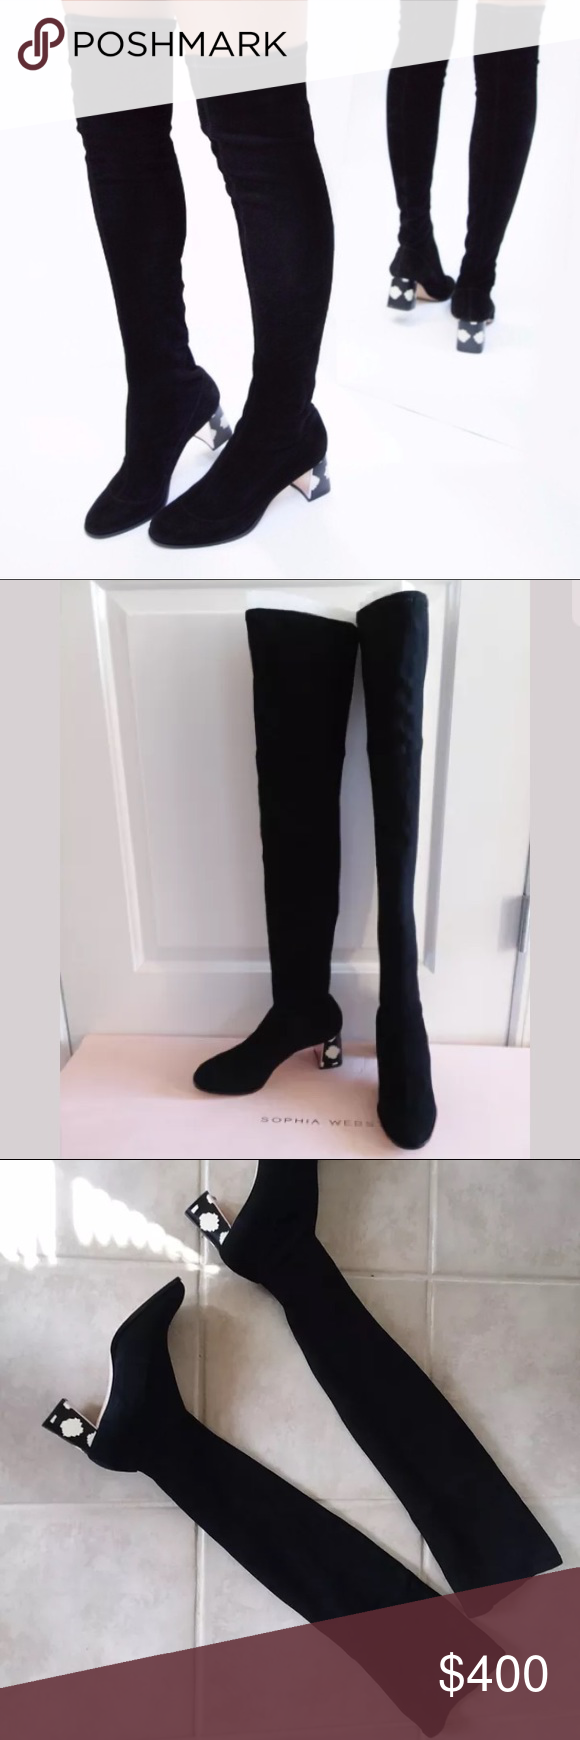 a1cb3b6933f Sophia Webster OTK Suranne Suede boot  895 NEW! Sophia Webster stretch suede  over-the